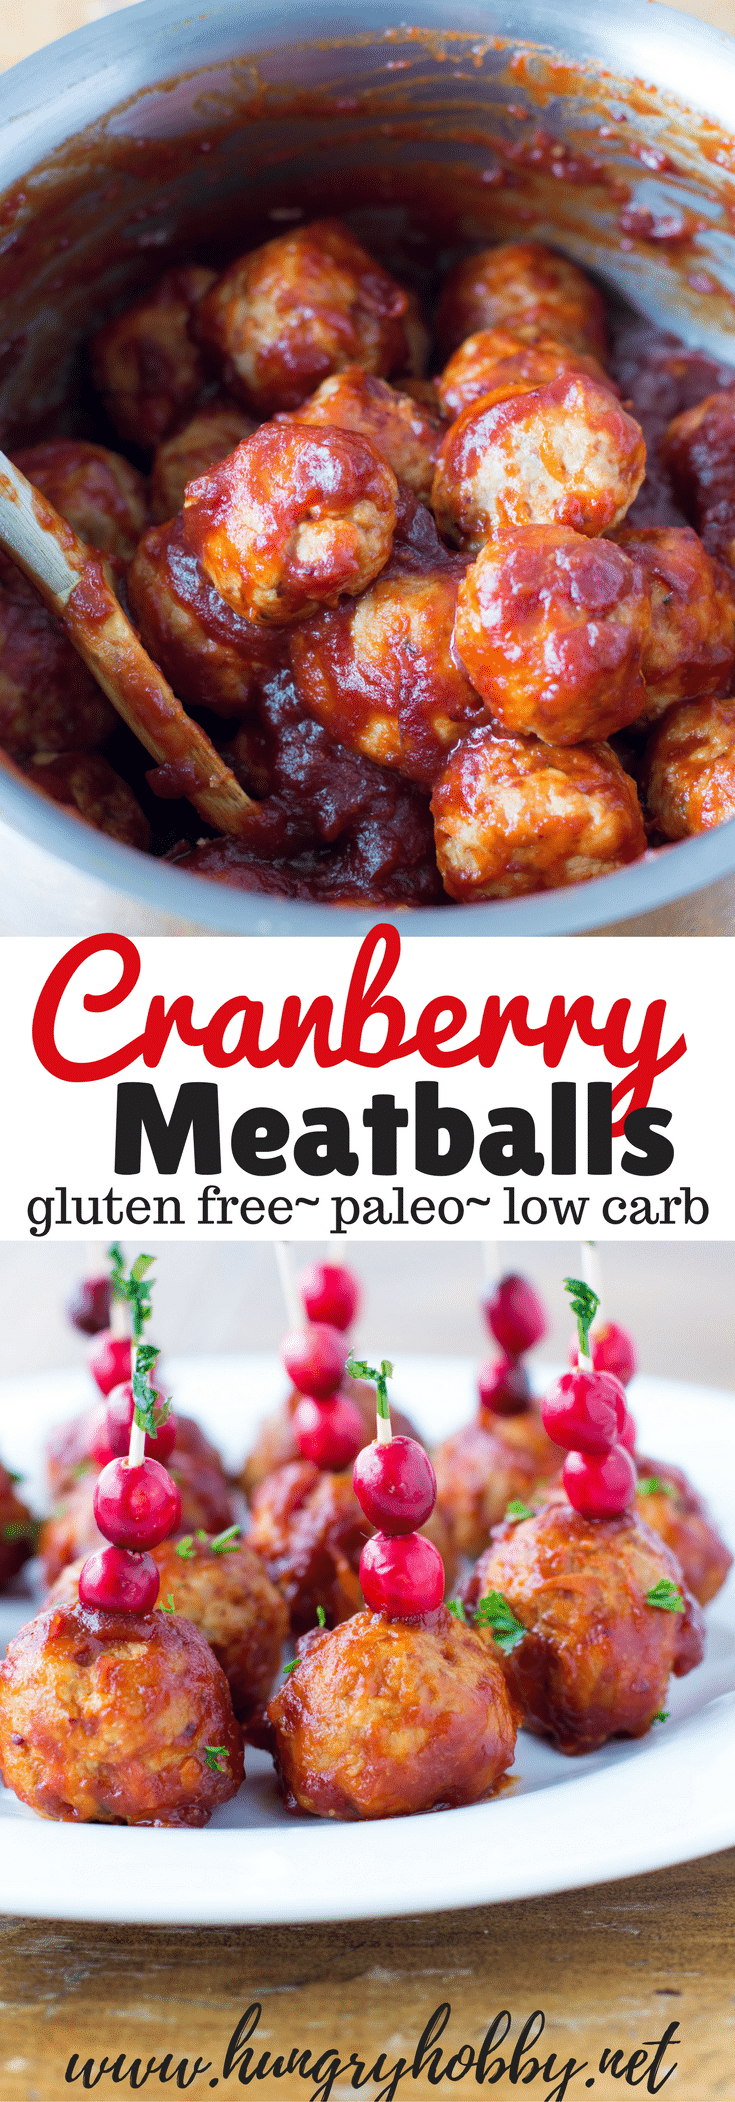 These cranberry meatballs are the perfect combination of savory and sweet,  a healthy holiday appetizer or dinner that will feed and impress a crowd.  #glutenfree #dairyfree #appetizer #football #paleo #meatballs